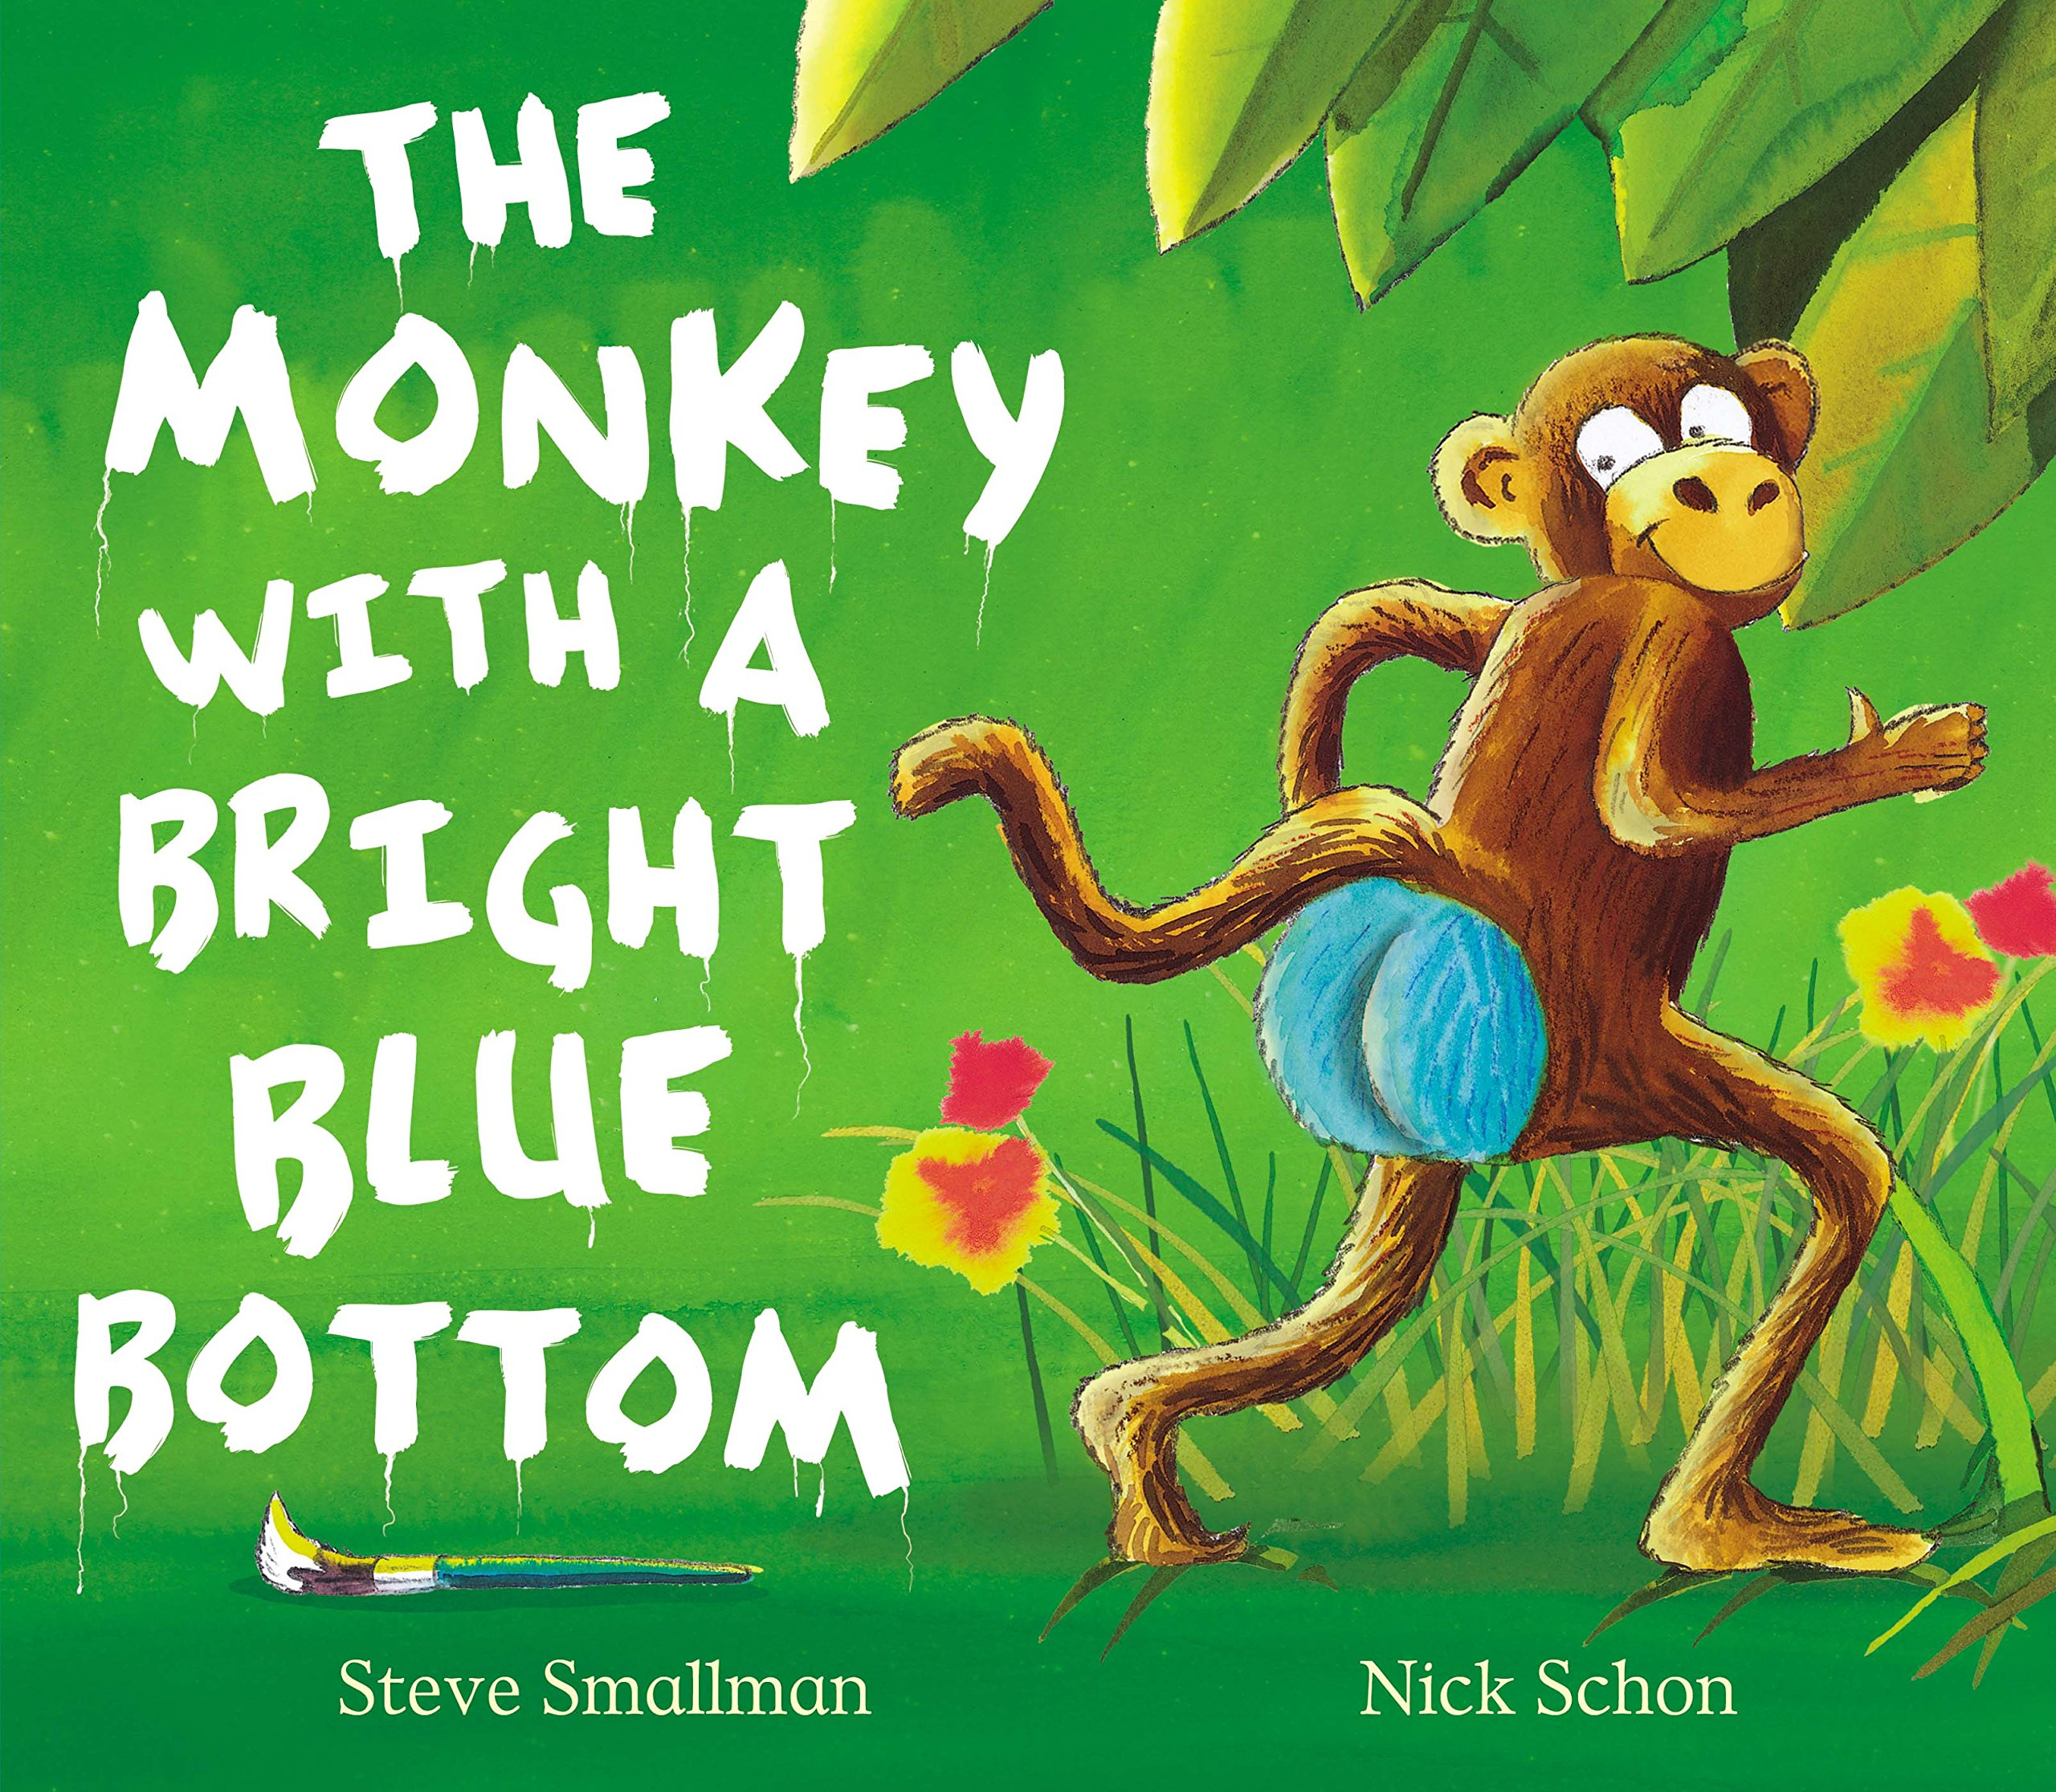 The Monkey with a Bright Blue Bottom Picture Book and CD Set: Amazon.co.uk:  Smallman, Steve, Schon, Nick: Books